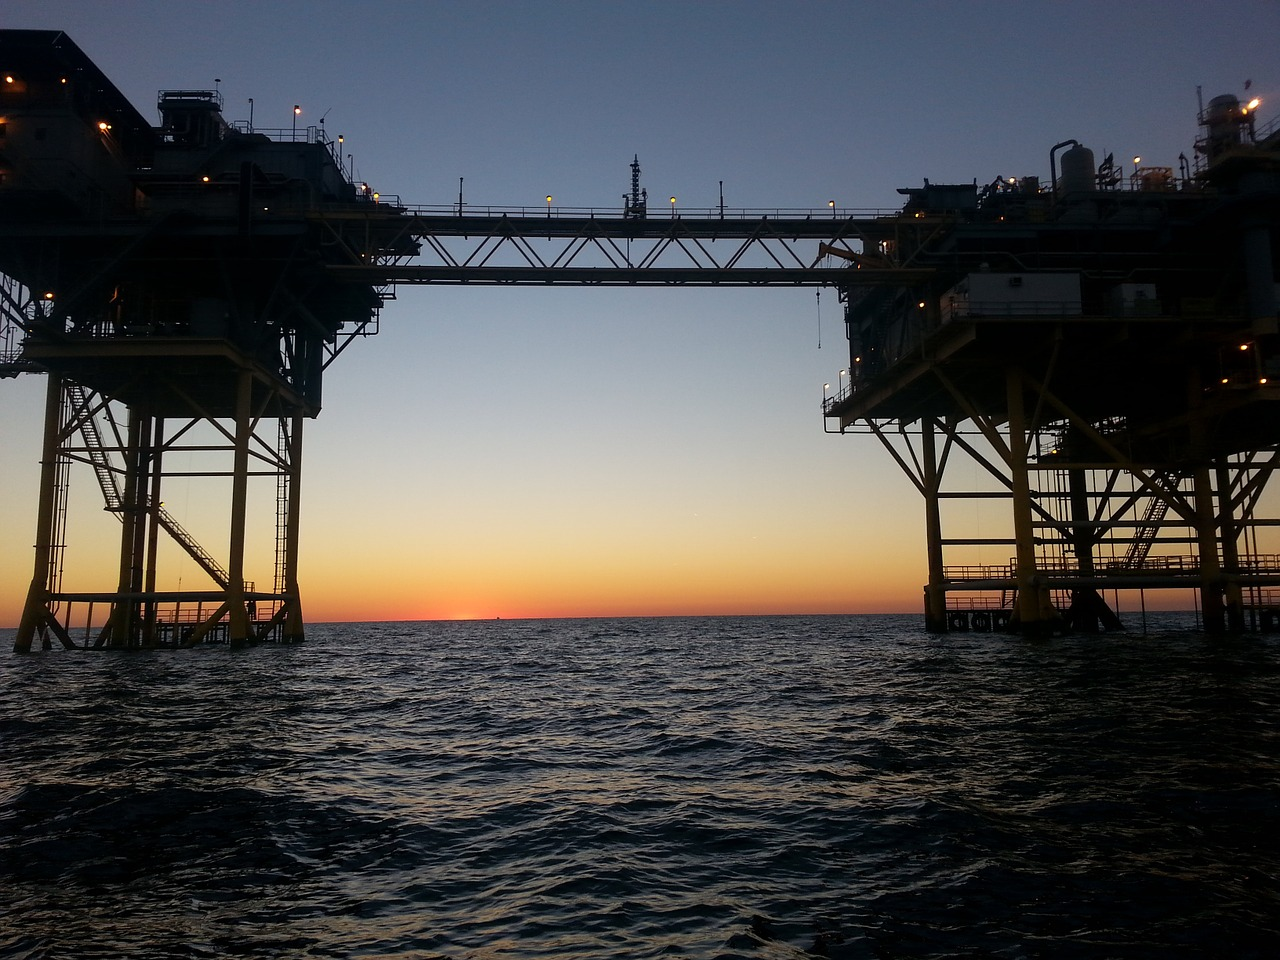 Cyprus Estimates a Projected Profit of About $9 Billion From Gas Drilling